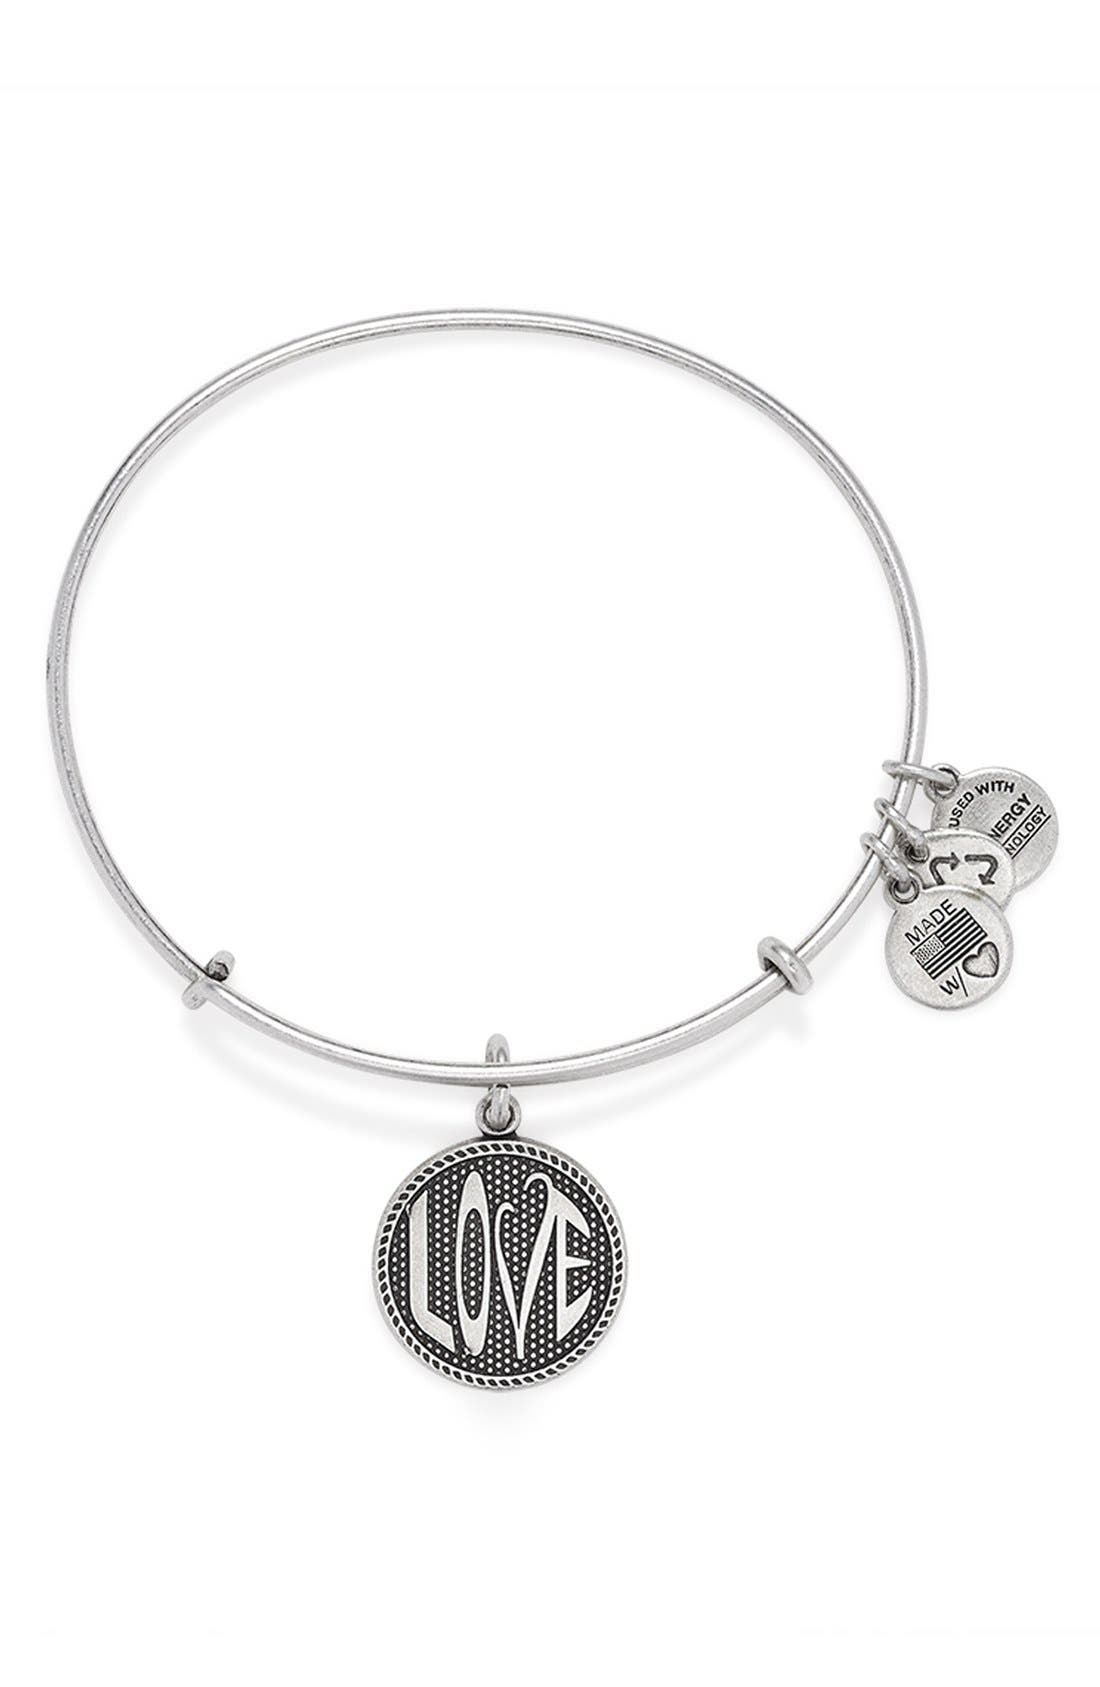 Main Image - Alex and Ani 'Open Love' Expandable Wire Bangle